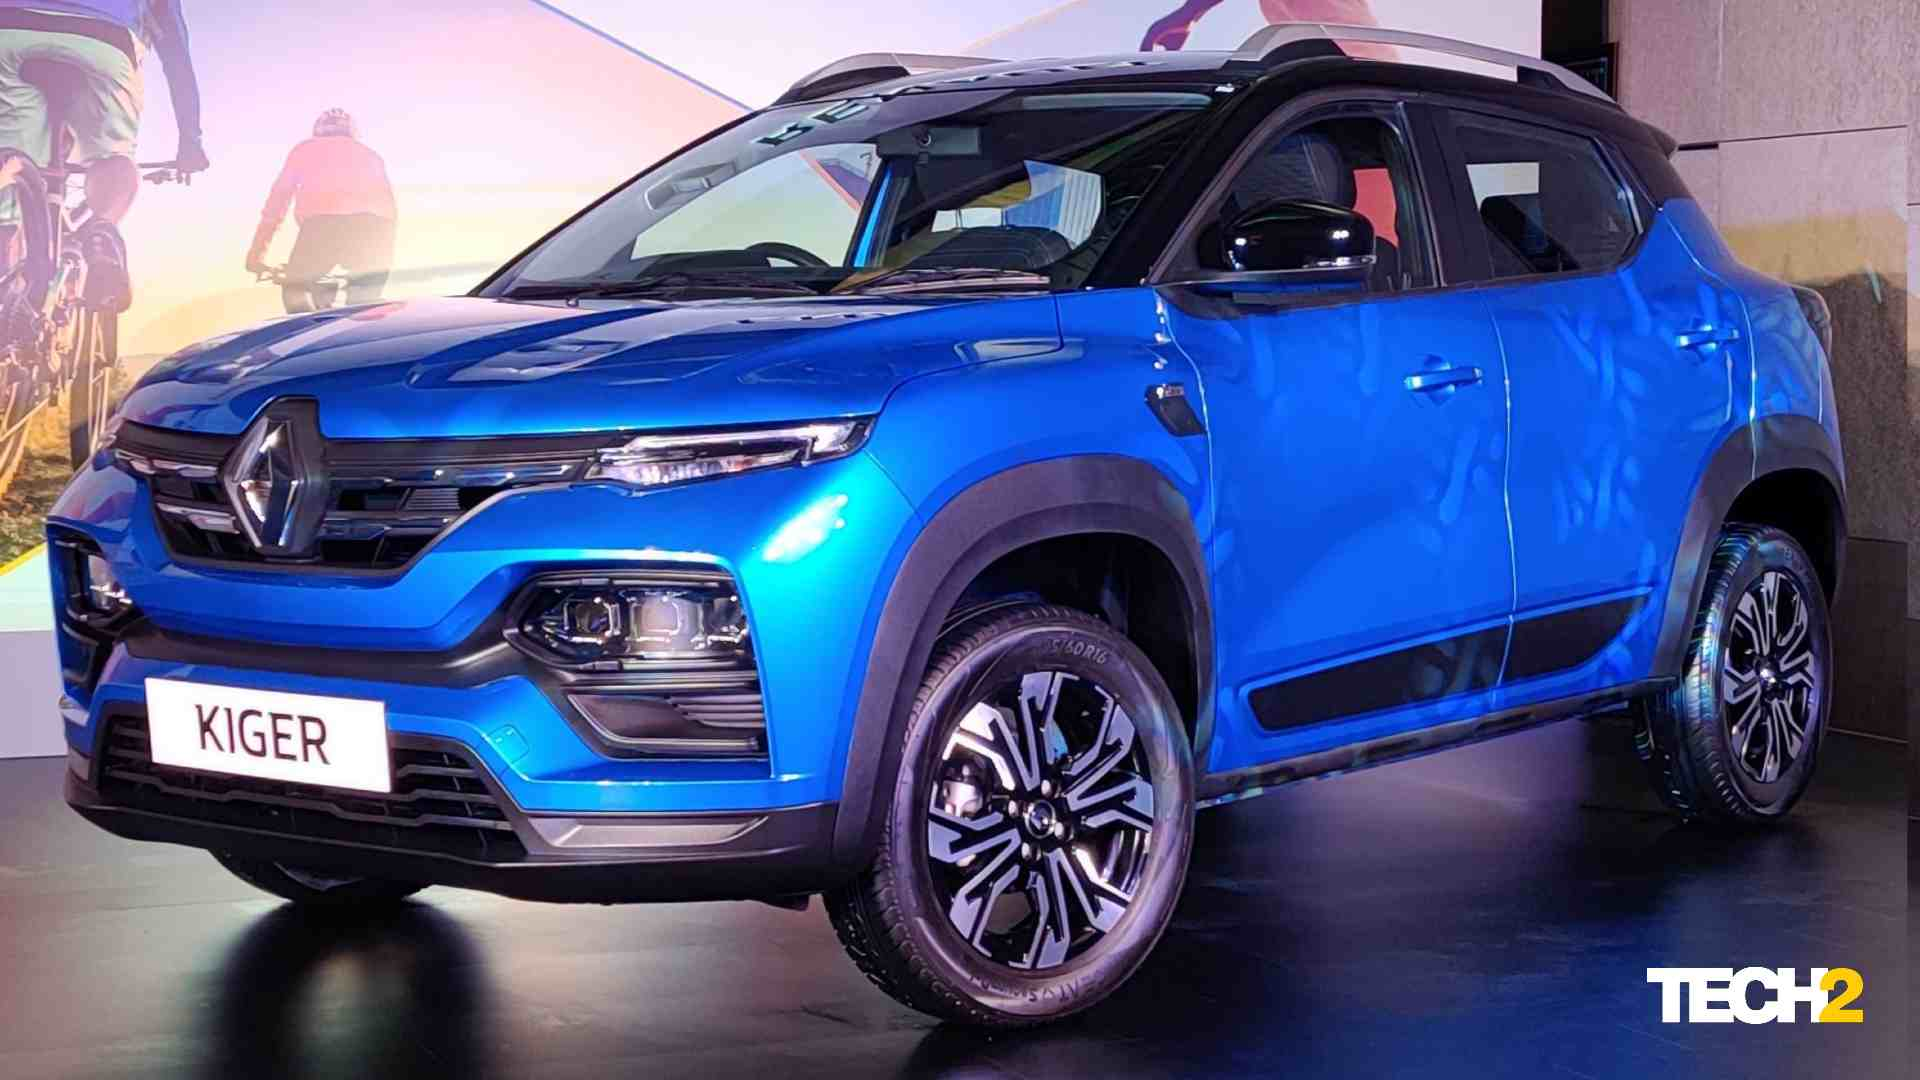 There are a total of four trim levels for the Renault Kiger - RXE, RXL, RXT and RXZ. Image: Tech2 / Amaan Ahmed